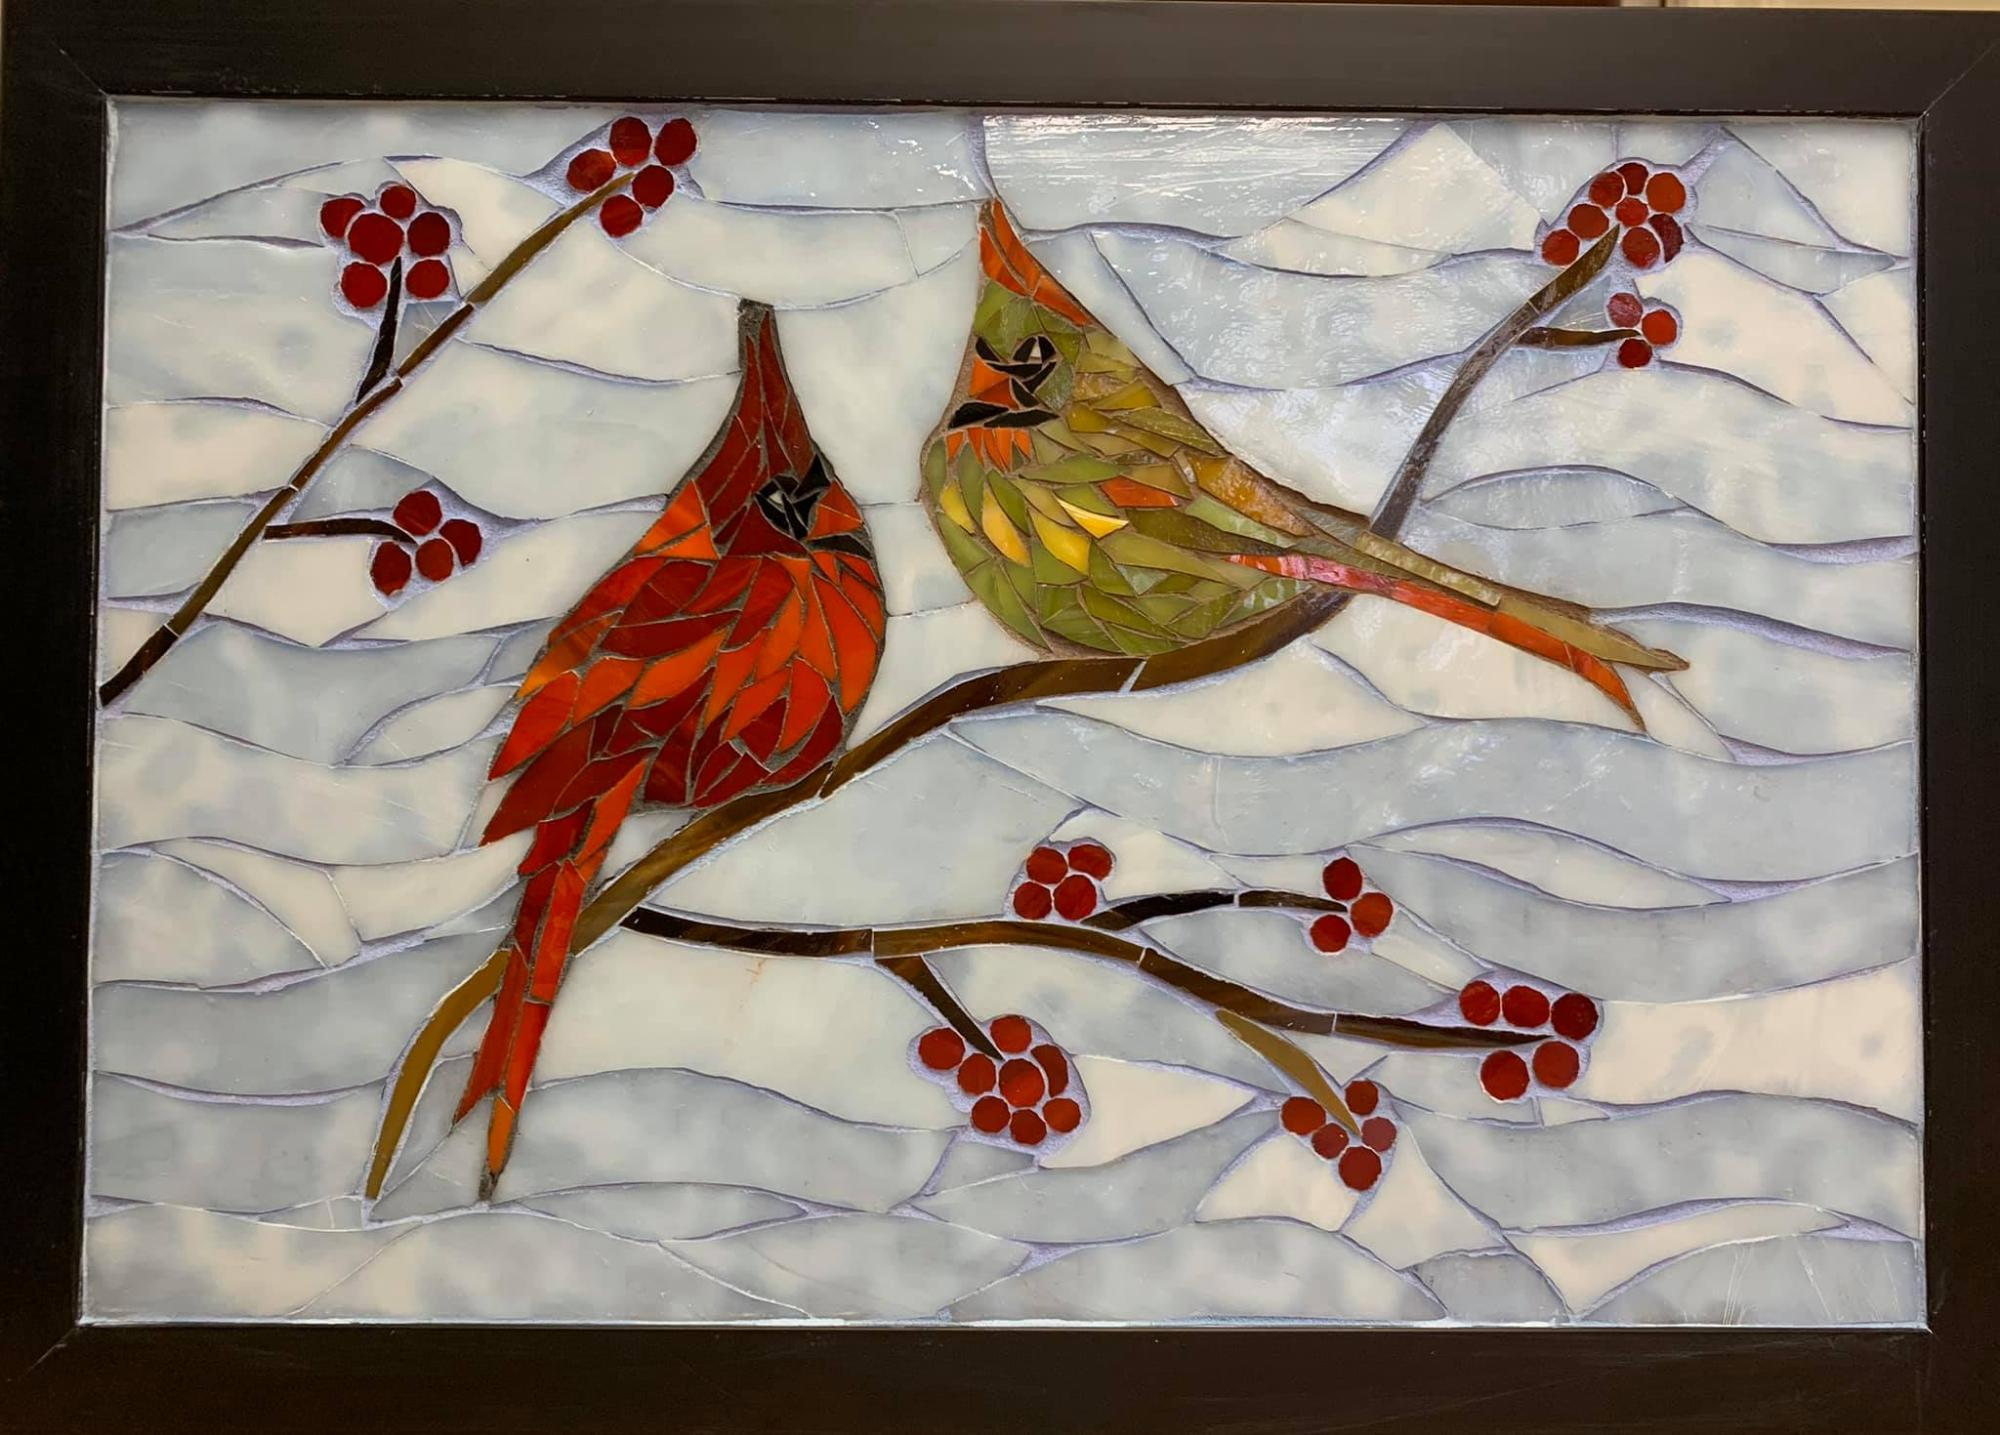 Cardinals_and_winterberries.jpg